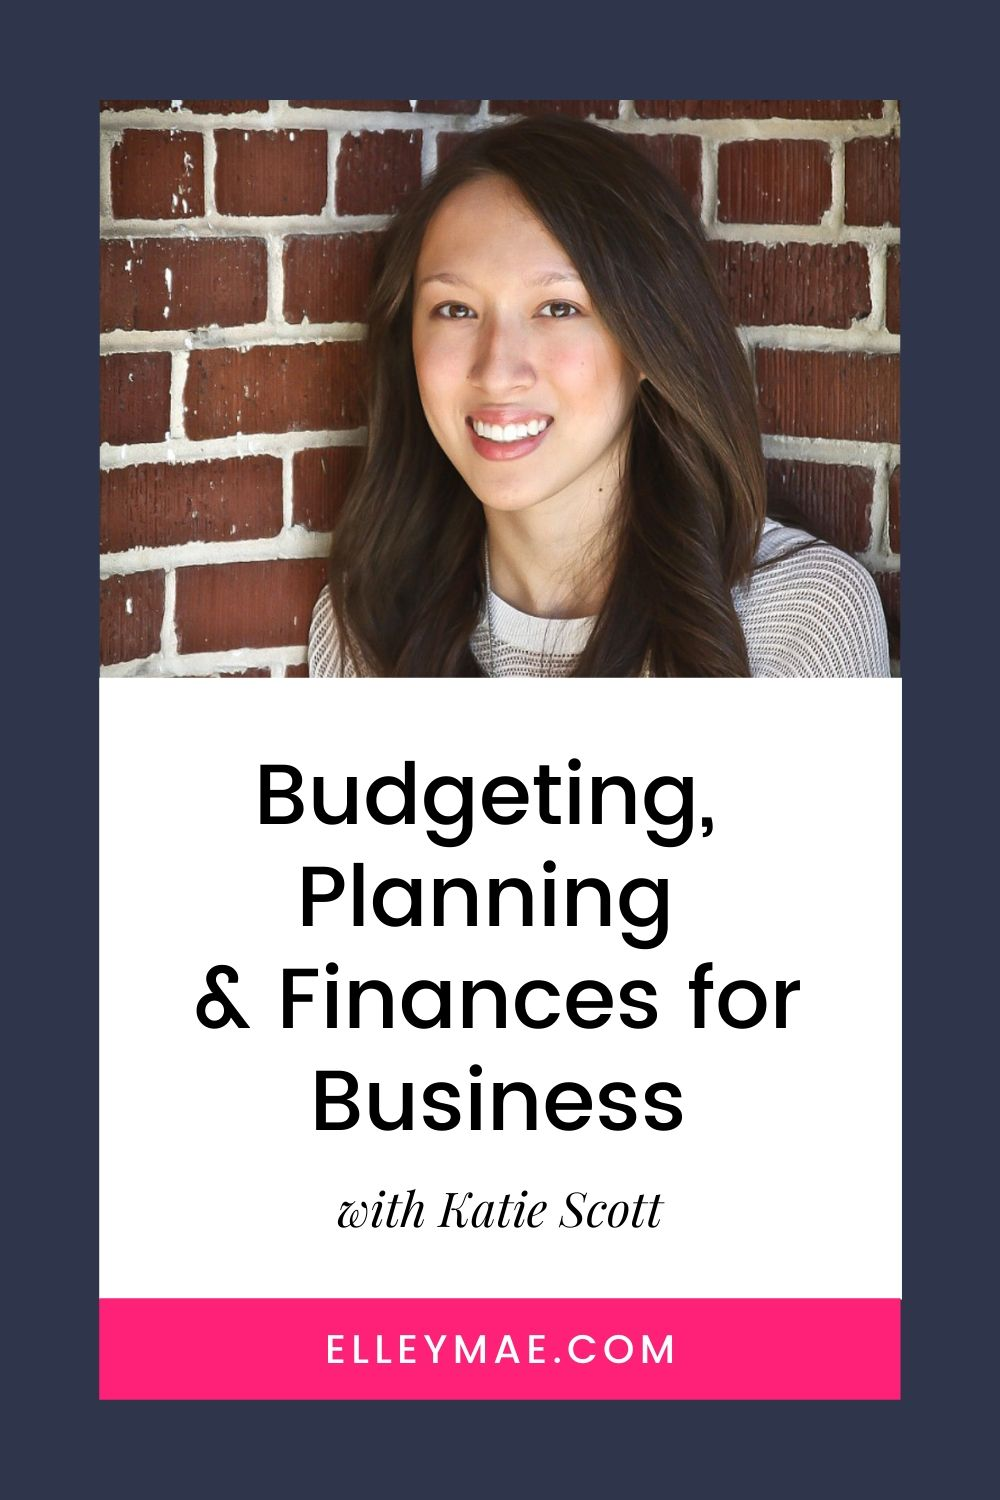 Budgeting, Planning & Finances for Business